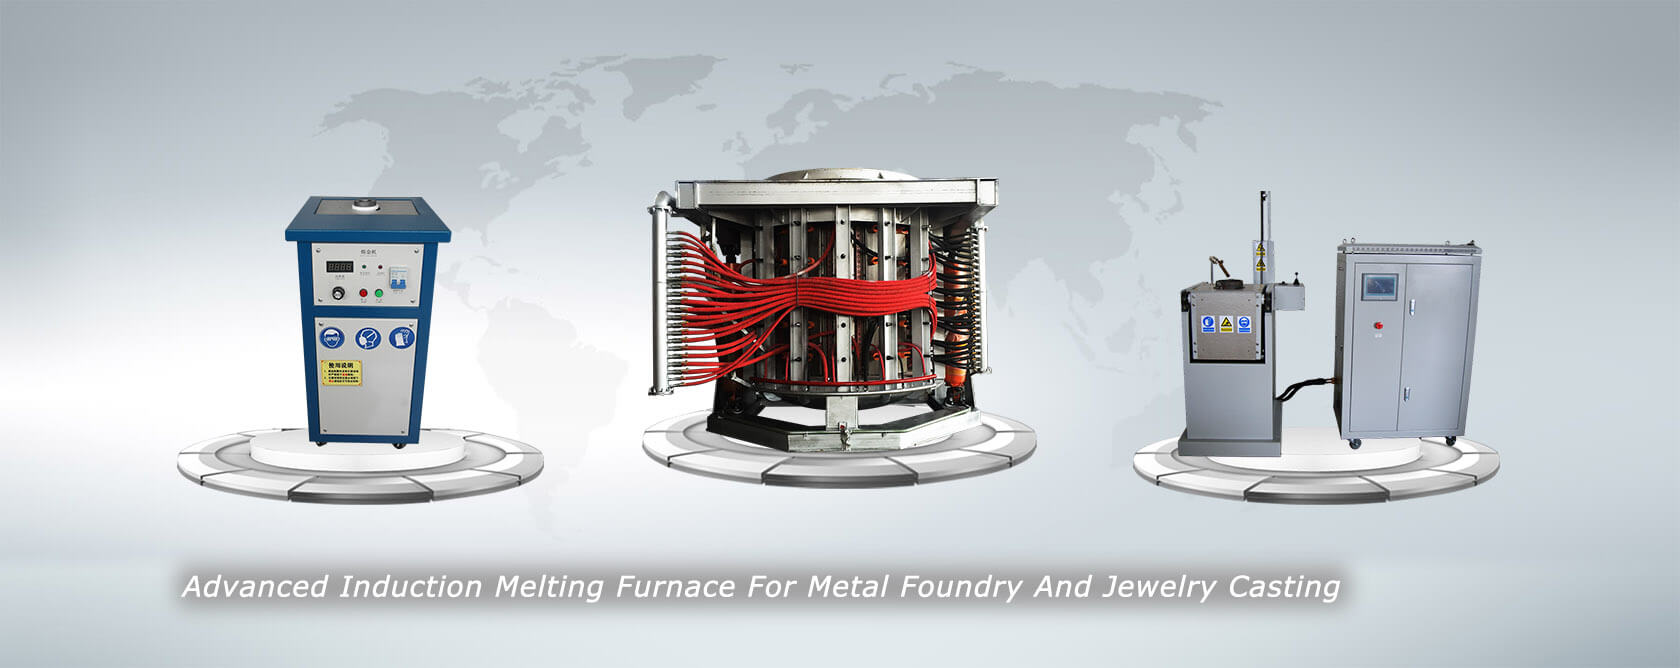 induction-furnace-for-all-kinds-of-metal